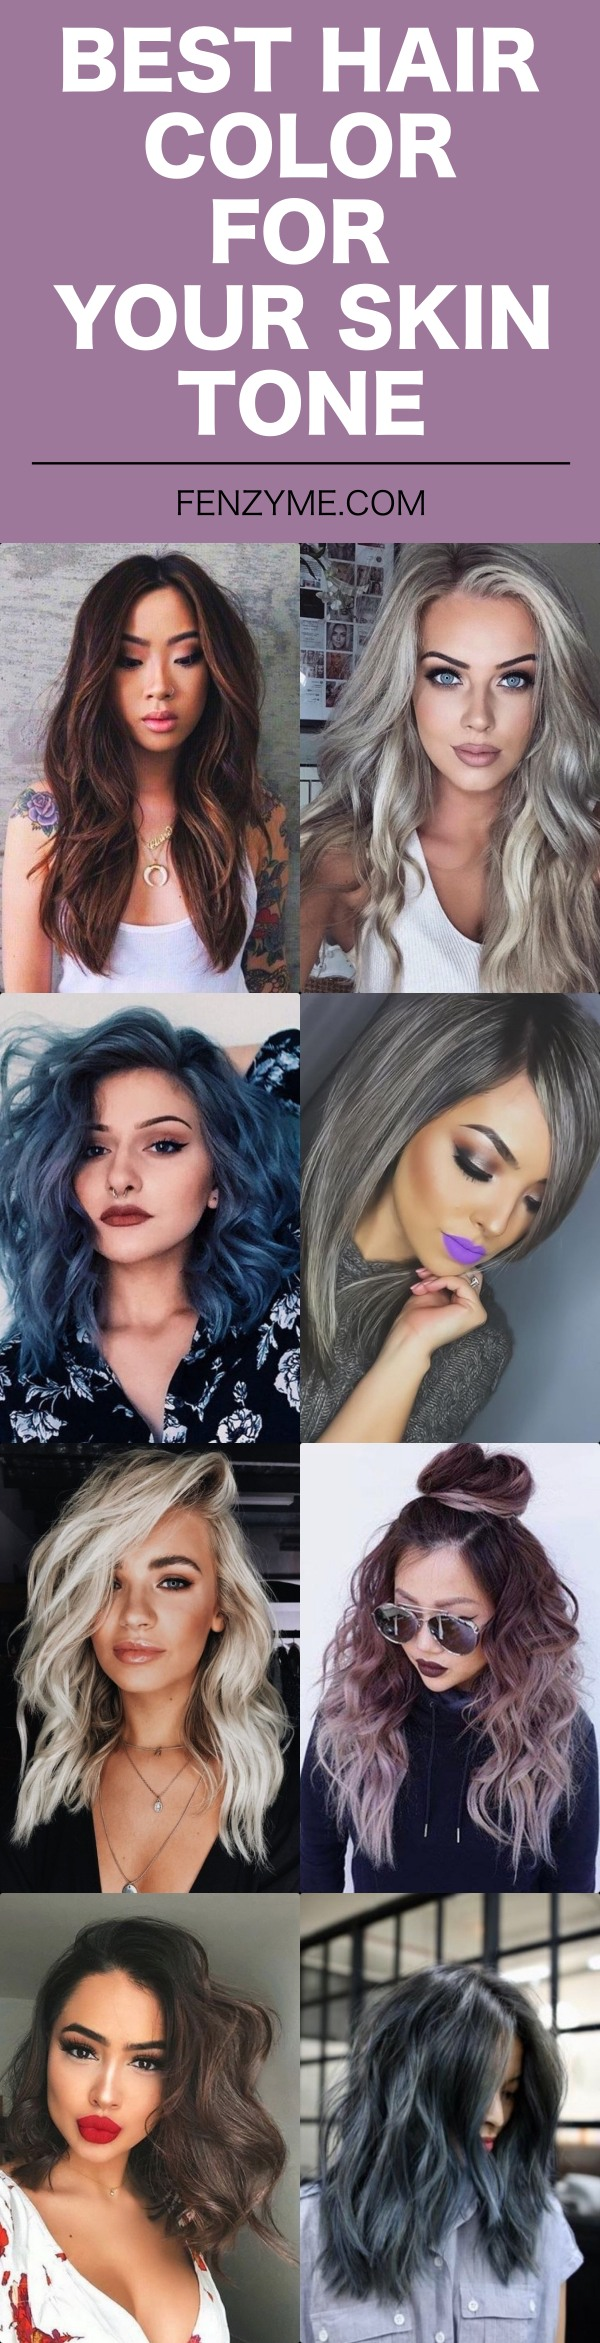 40 Best Hair Color For Your Skin Tone